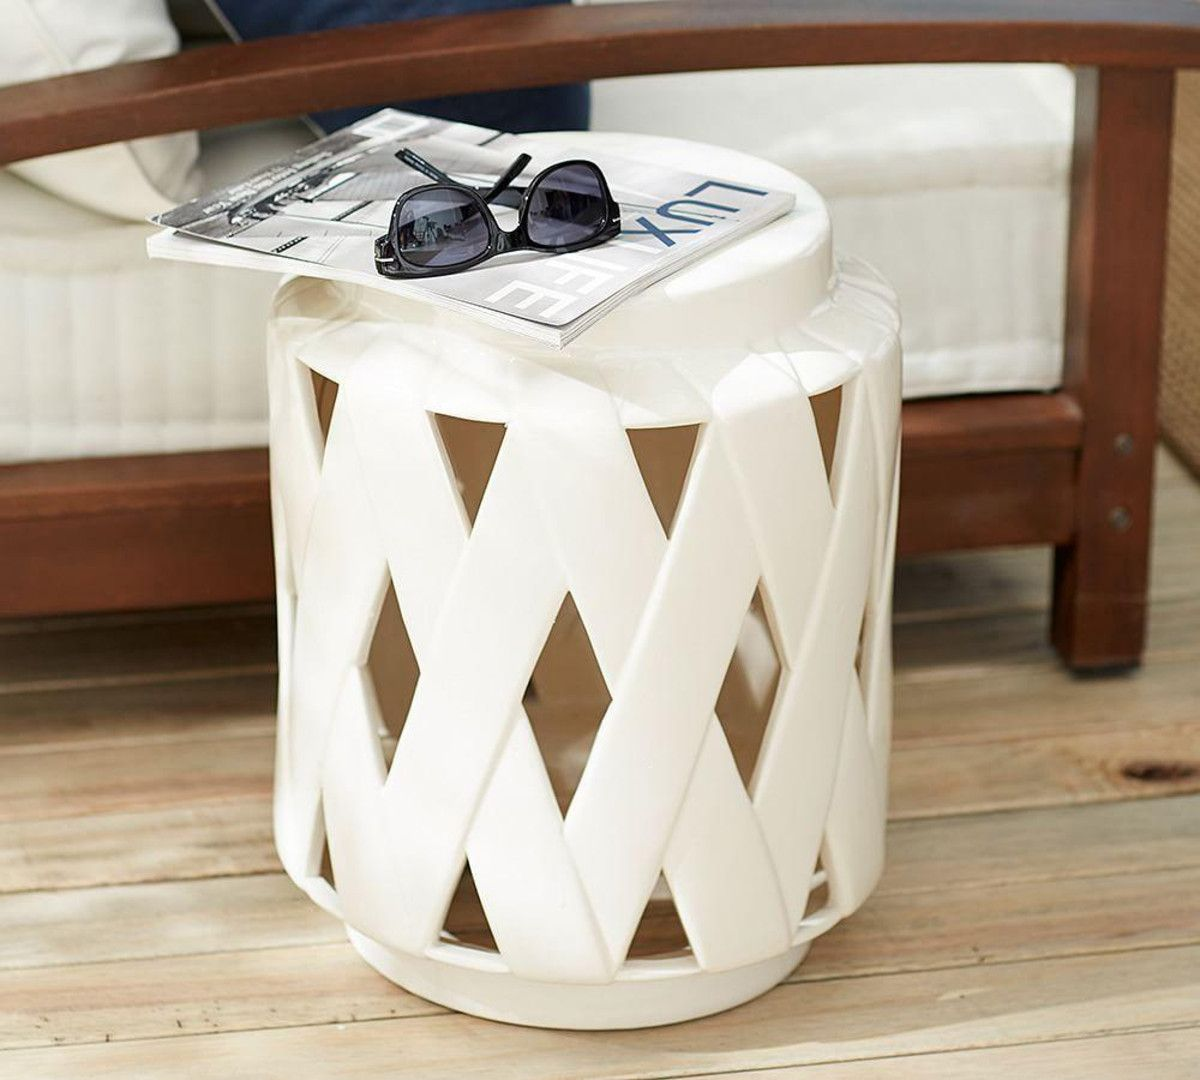 lattice ceramic accent table home inspo pottery barn jamie coastal lamps silver metal cube tables ikea bar large turned legs pier one imports dining room white granite coffee